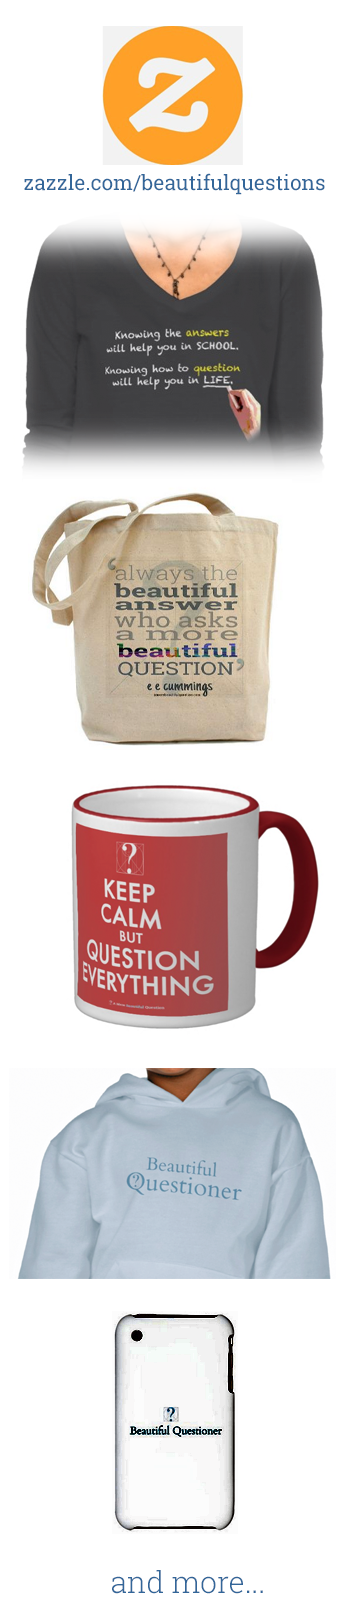 Question merchandise